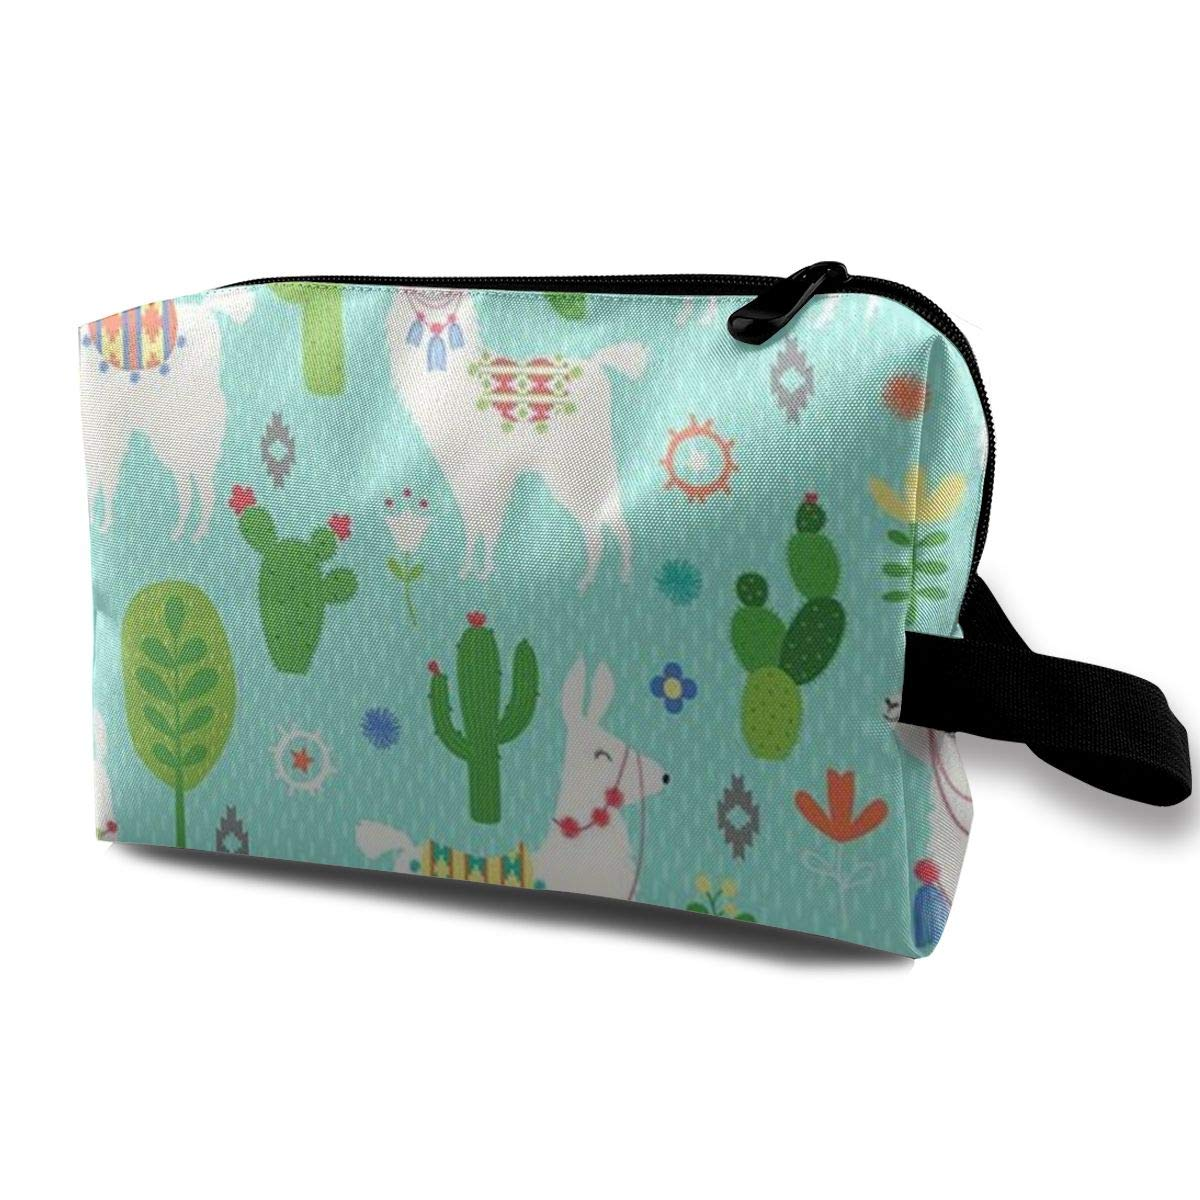 Travel Pouch Storage Bags Baskets Cosmetic Makeup Bag Llama And Cactus Mint Green